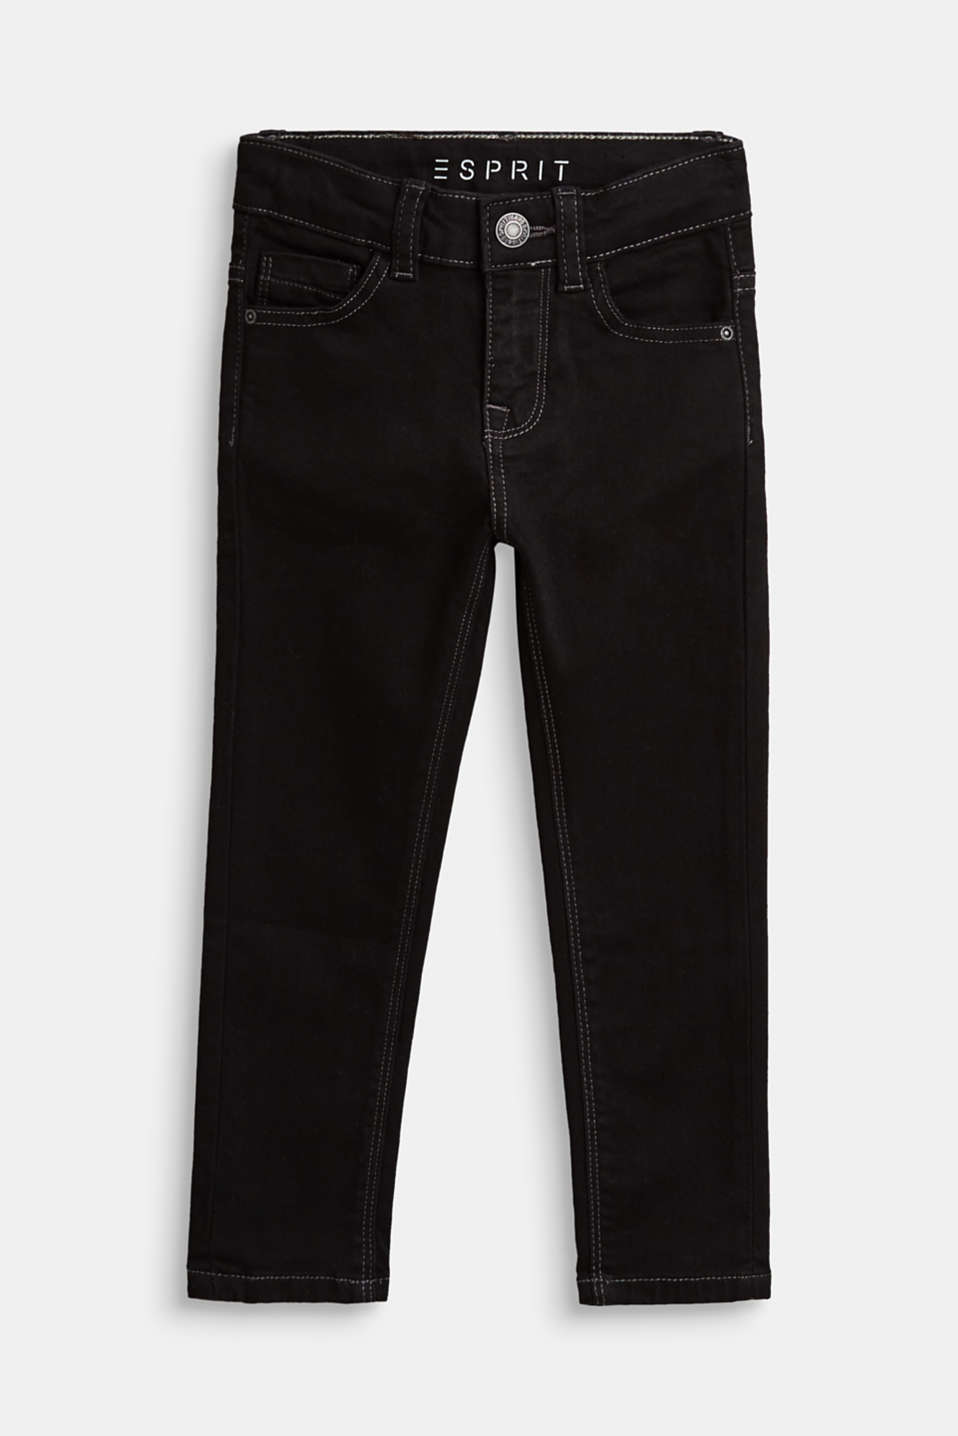 Esprit - 10 - denim pants colored